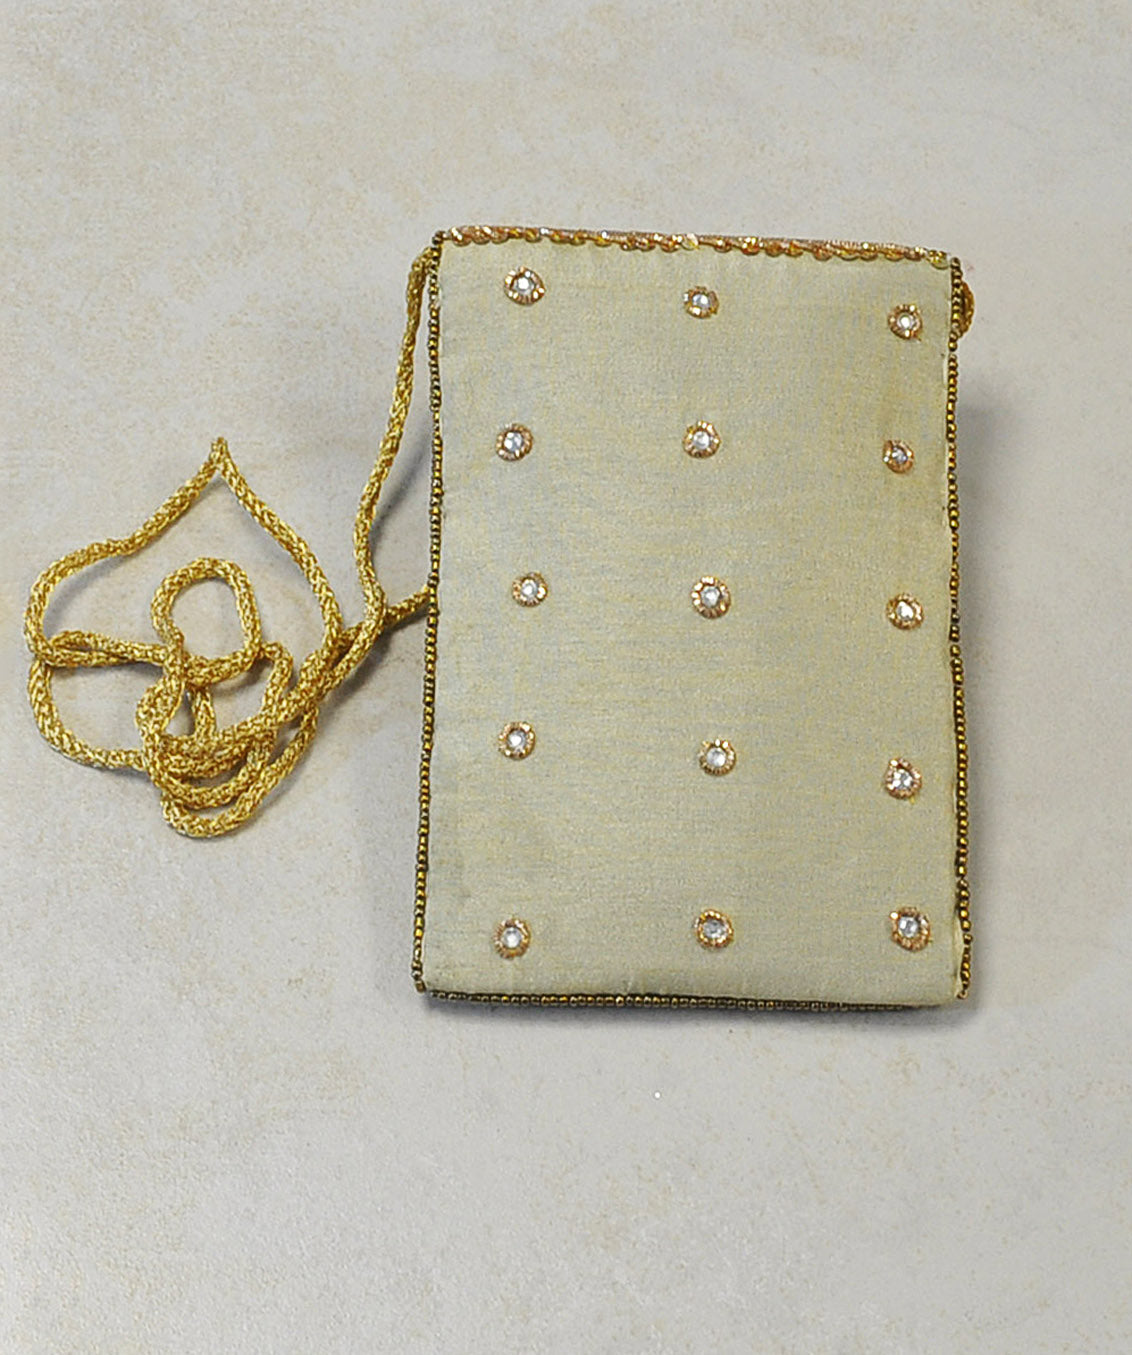 Designer Sequins and Crystals Embroidery Silk Crossbody Bag - Cream